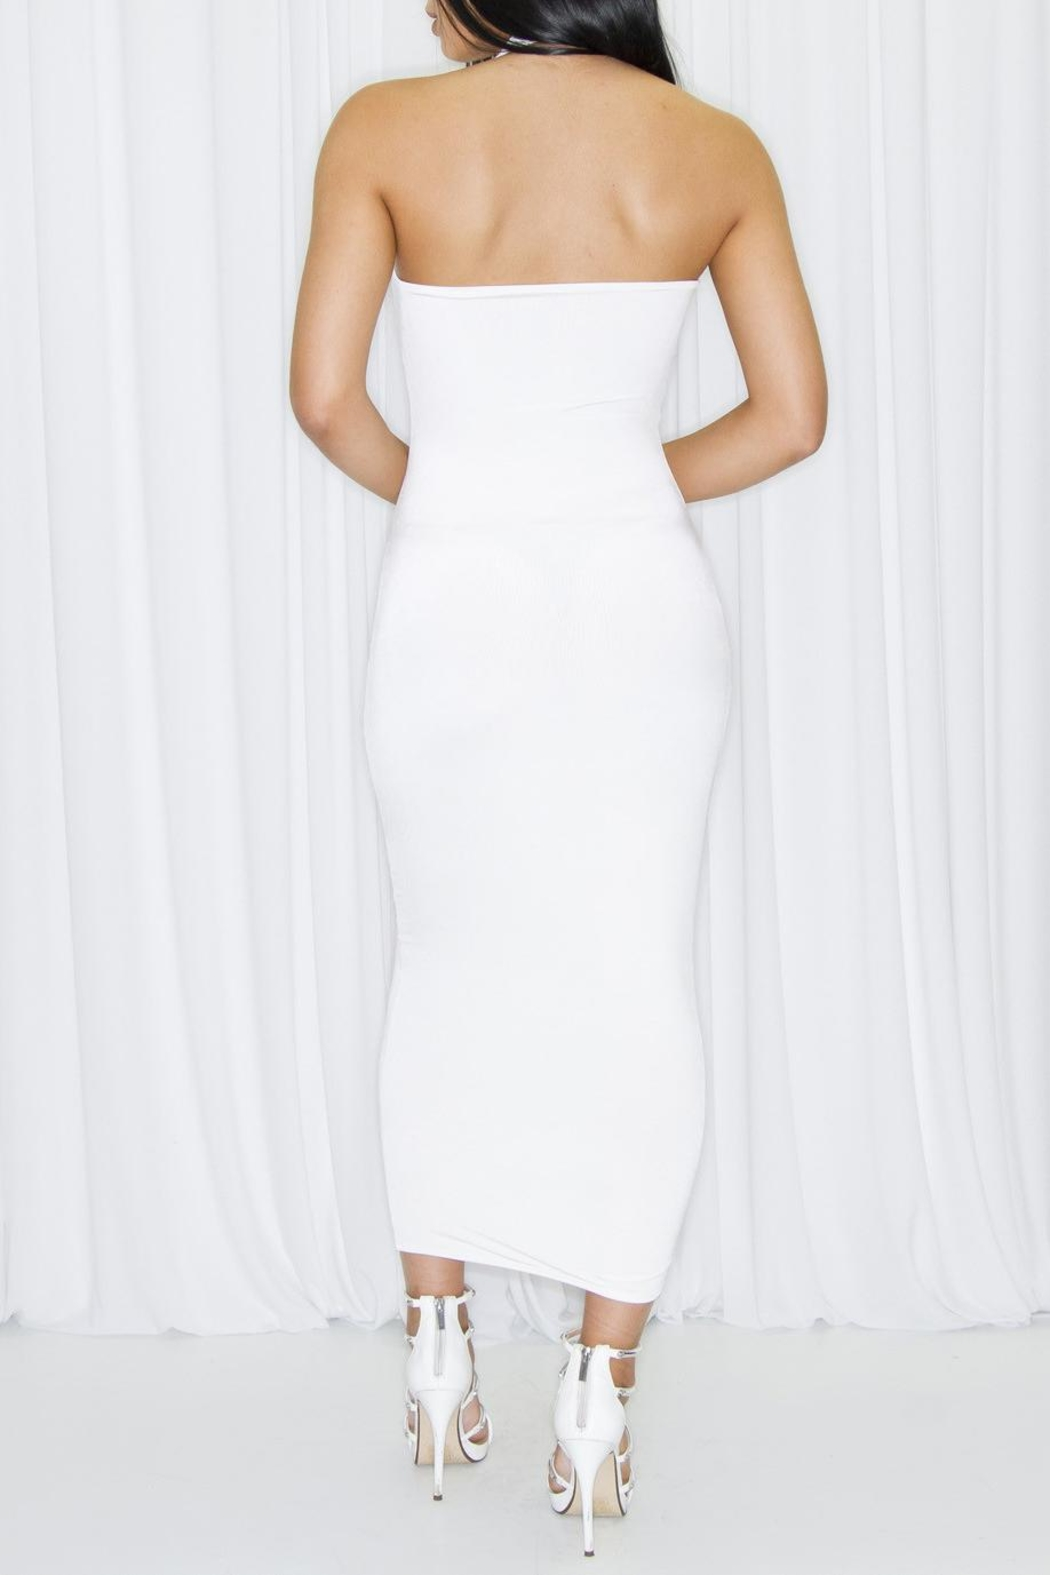 DBL Margot White Dress - Front Full Image